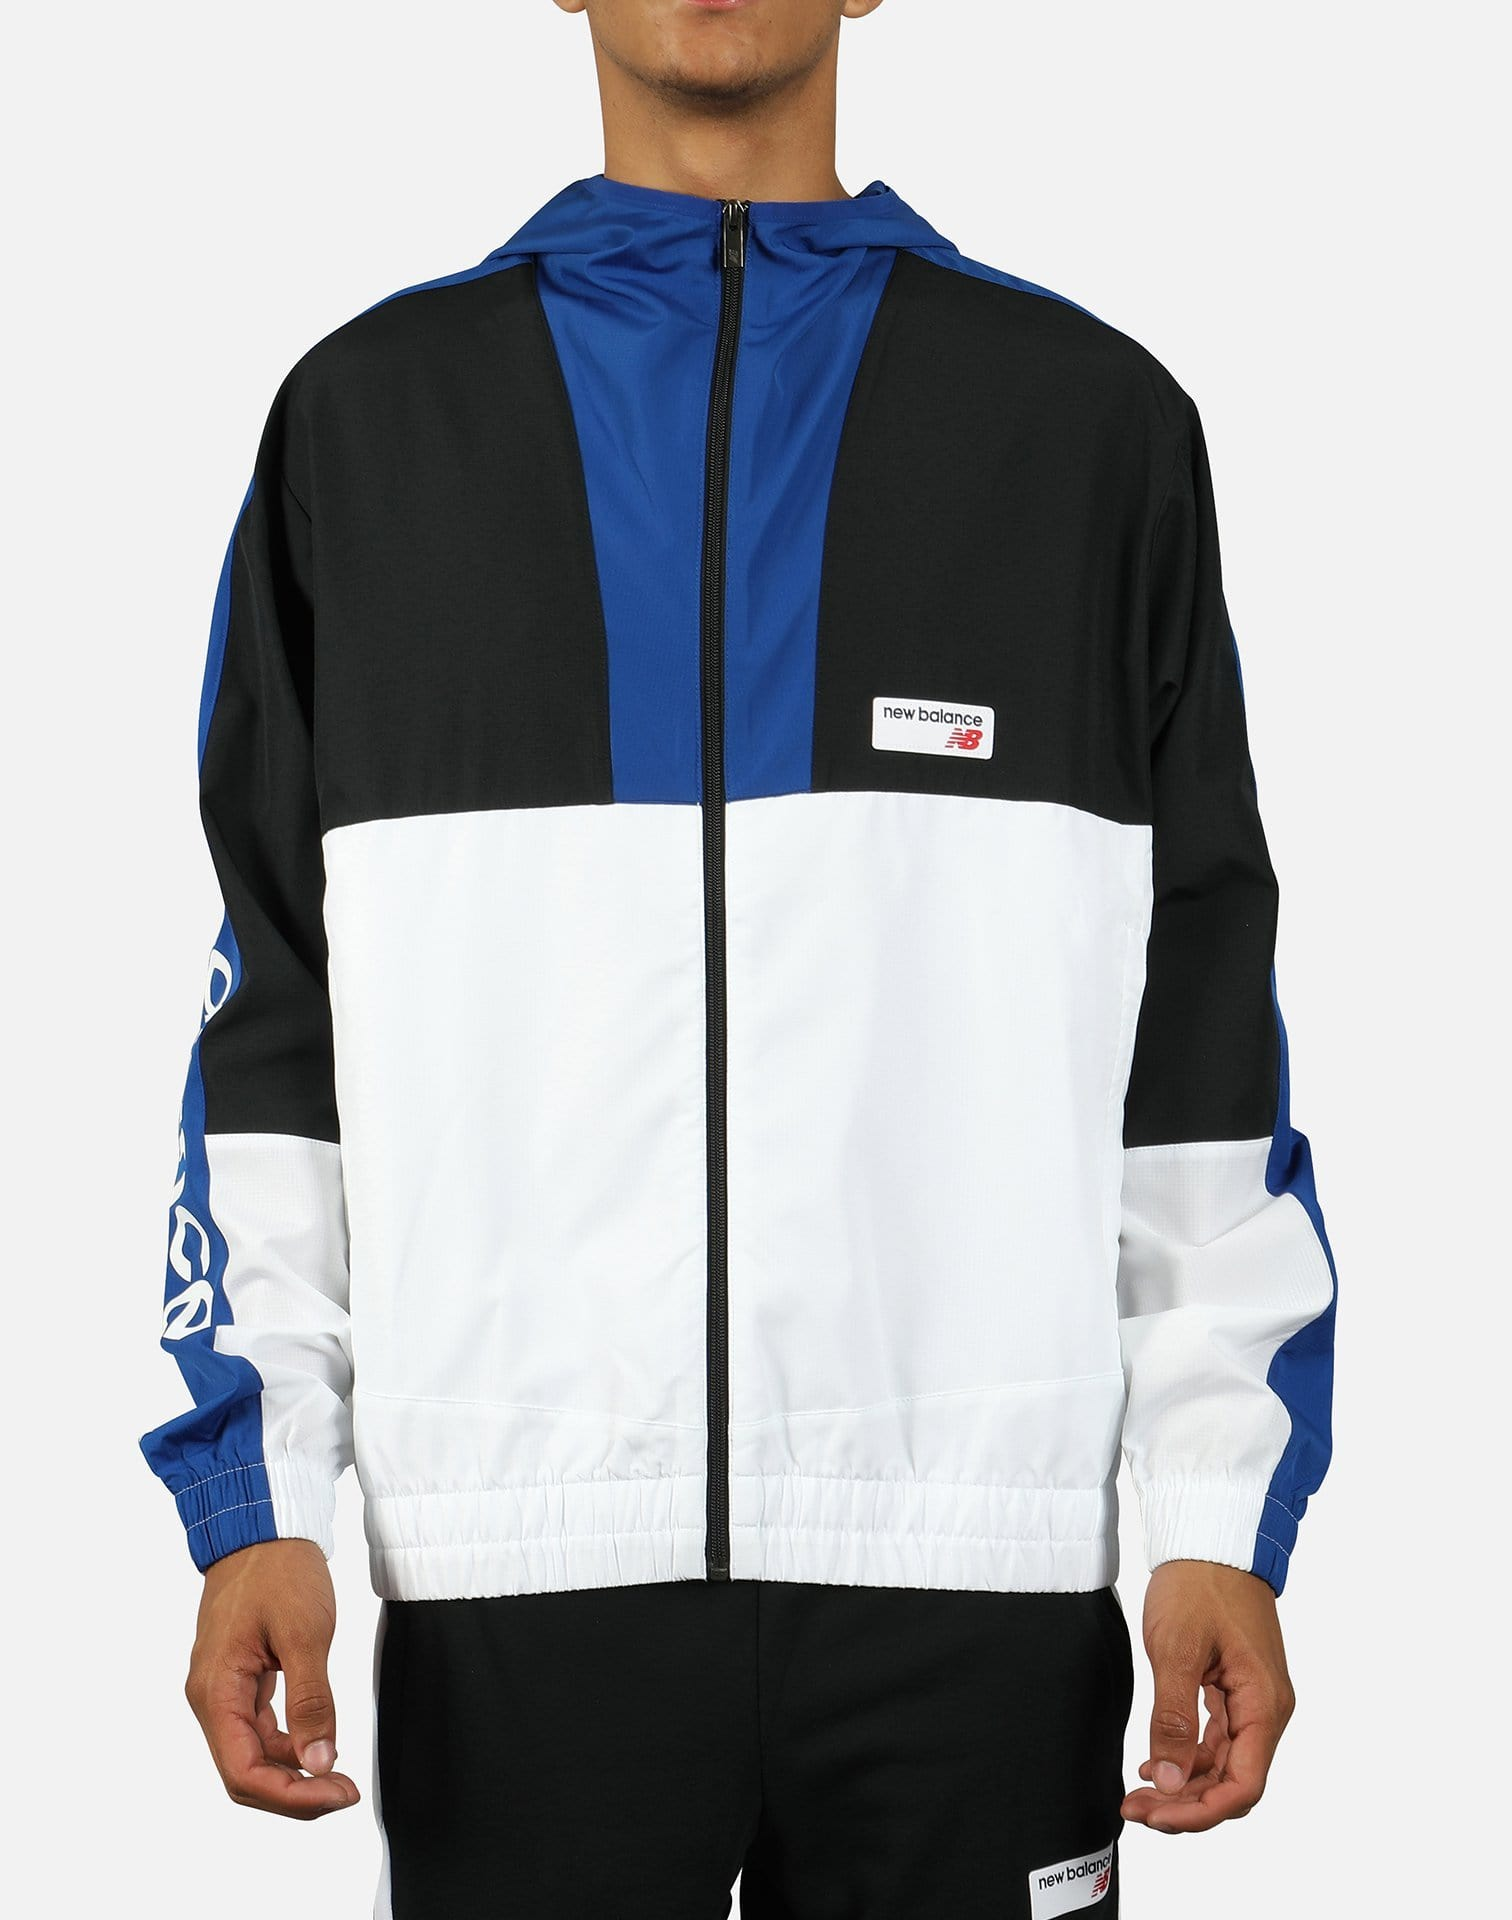 New Balance Men's NB Athletics Windbreaker